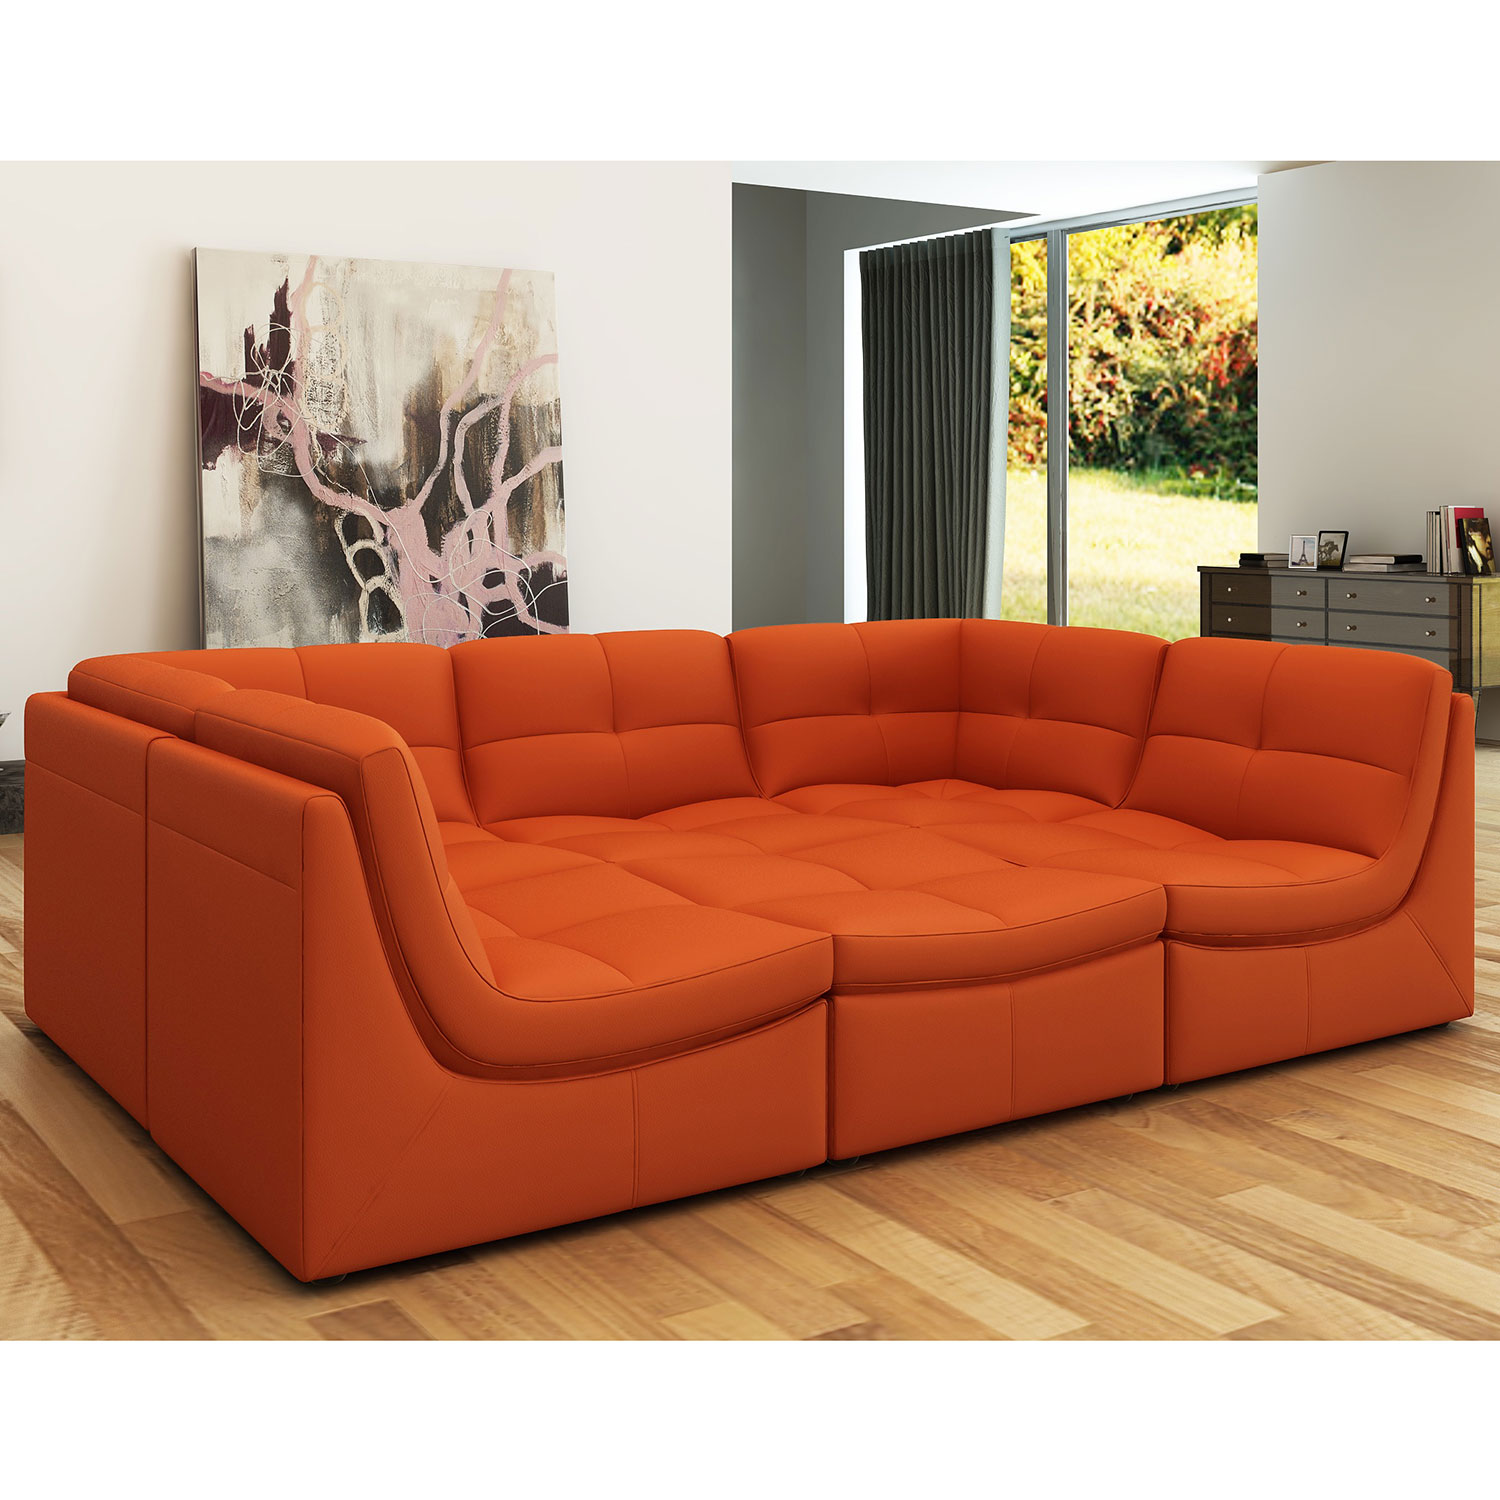 size ideas leather for orange sets modern burnt italsofa center table sofaange and of coffee sofa striking tennessee beige microfiber nashville photos full sectional sofas sale